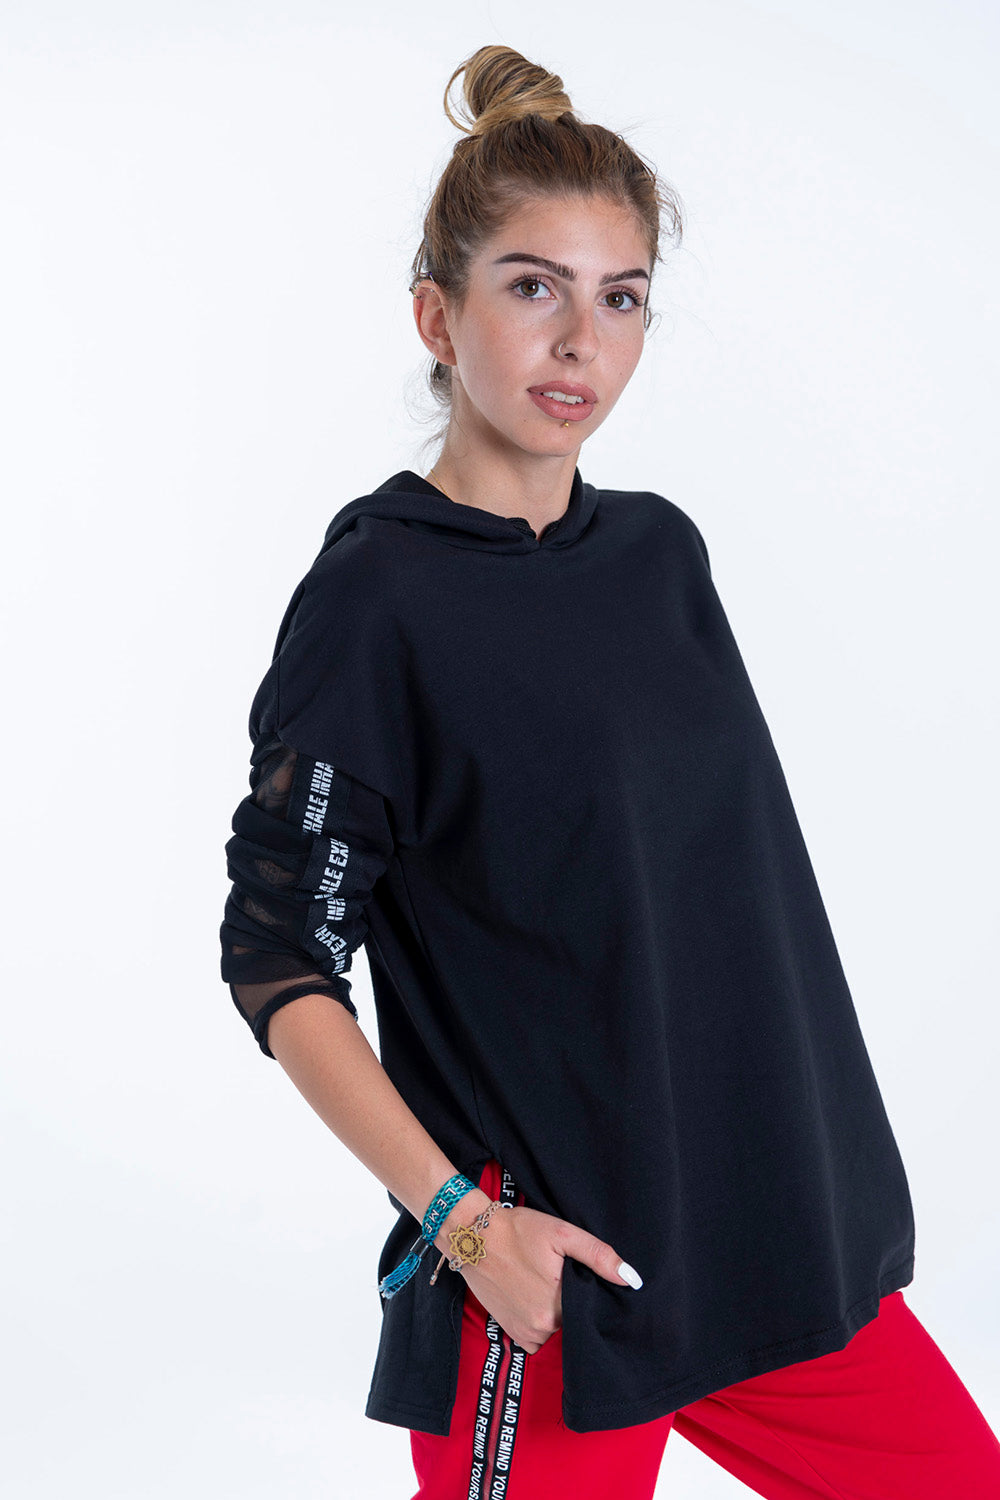 Jumper with hood and see through sleeve detail and text